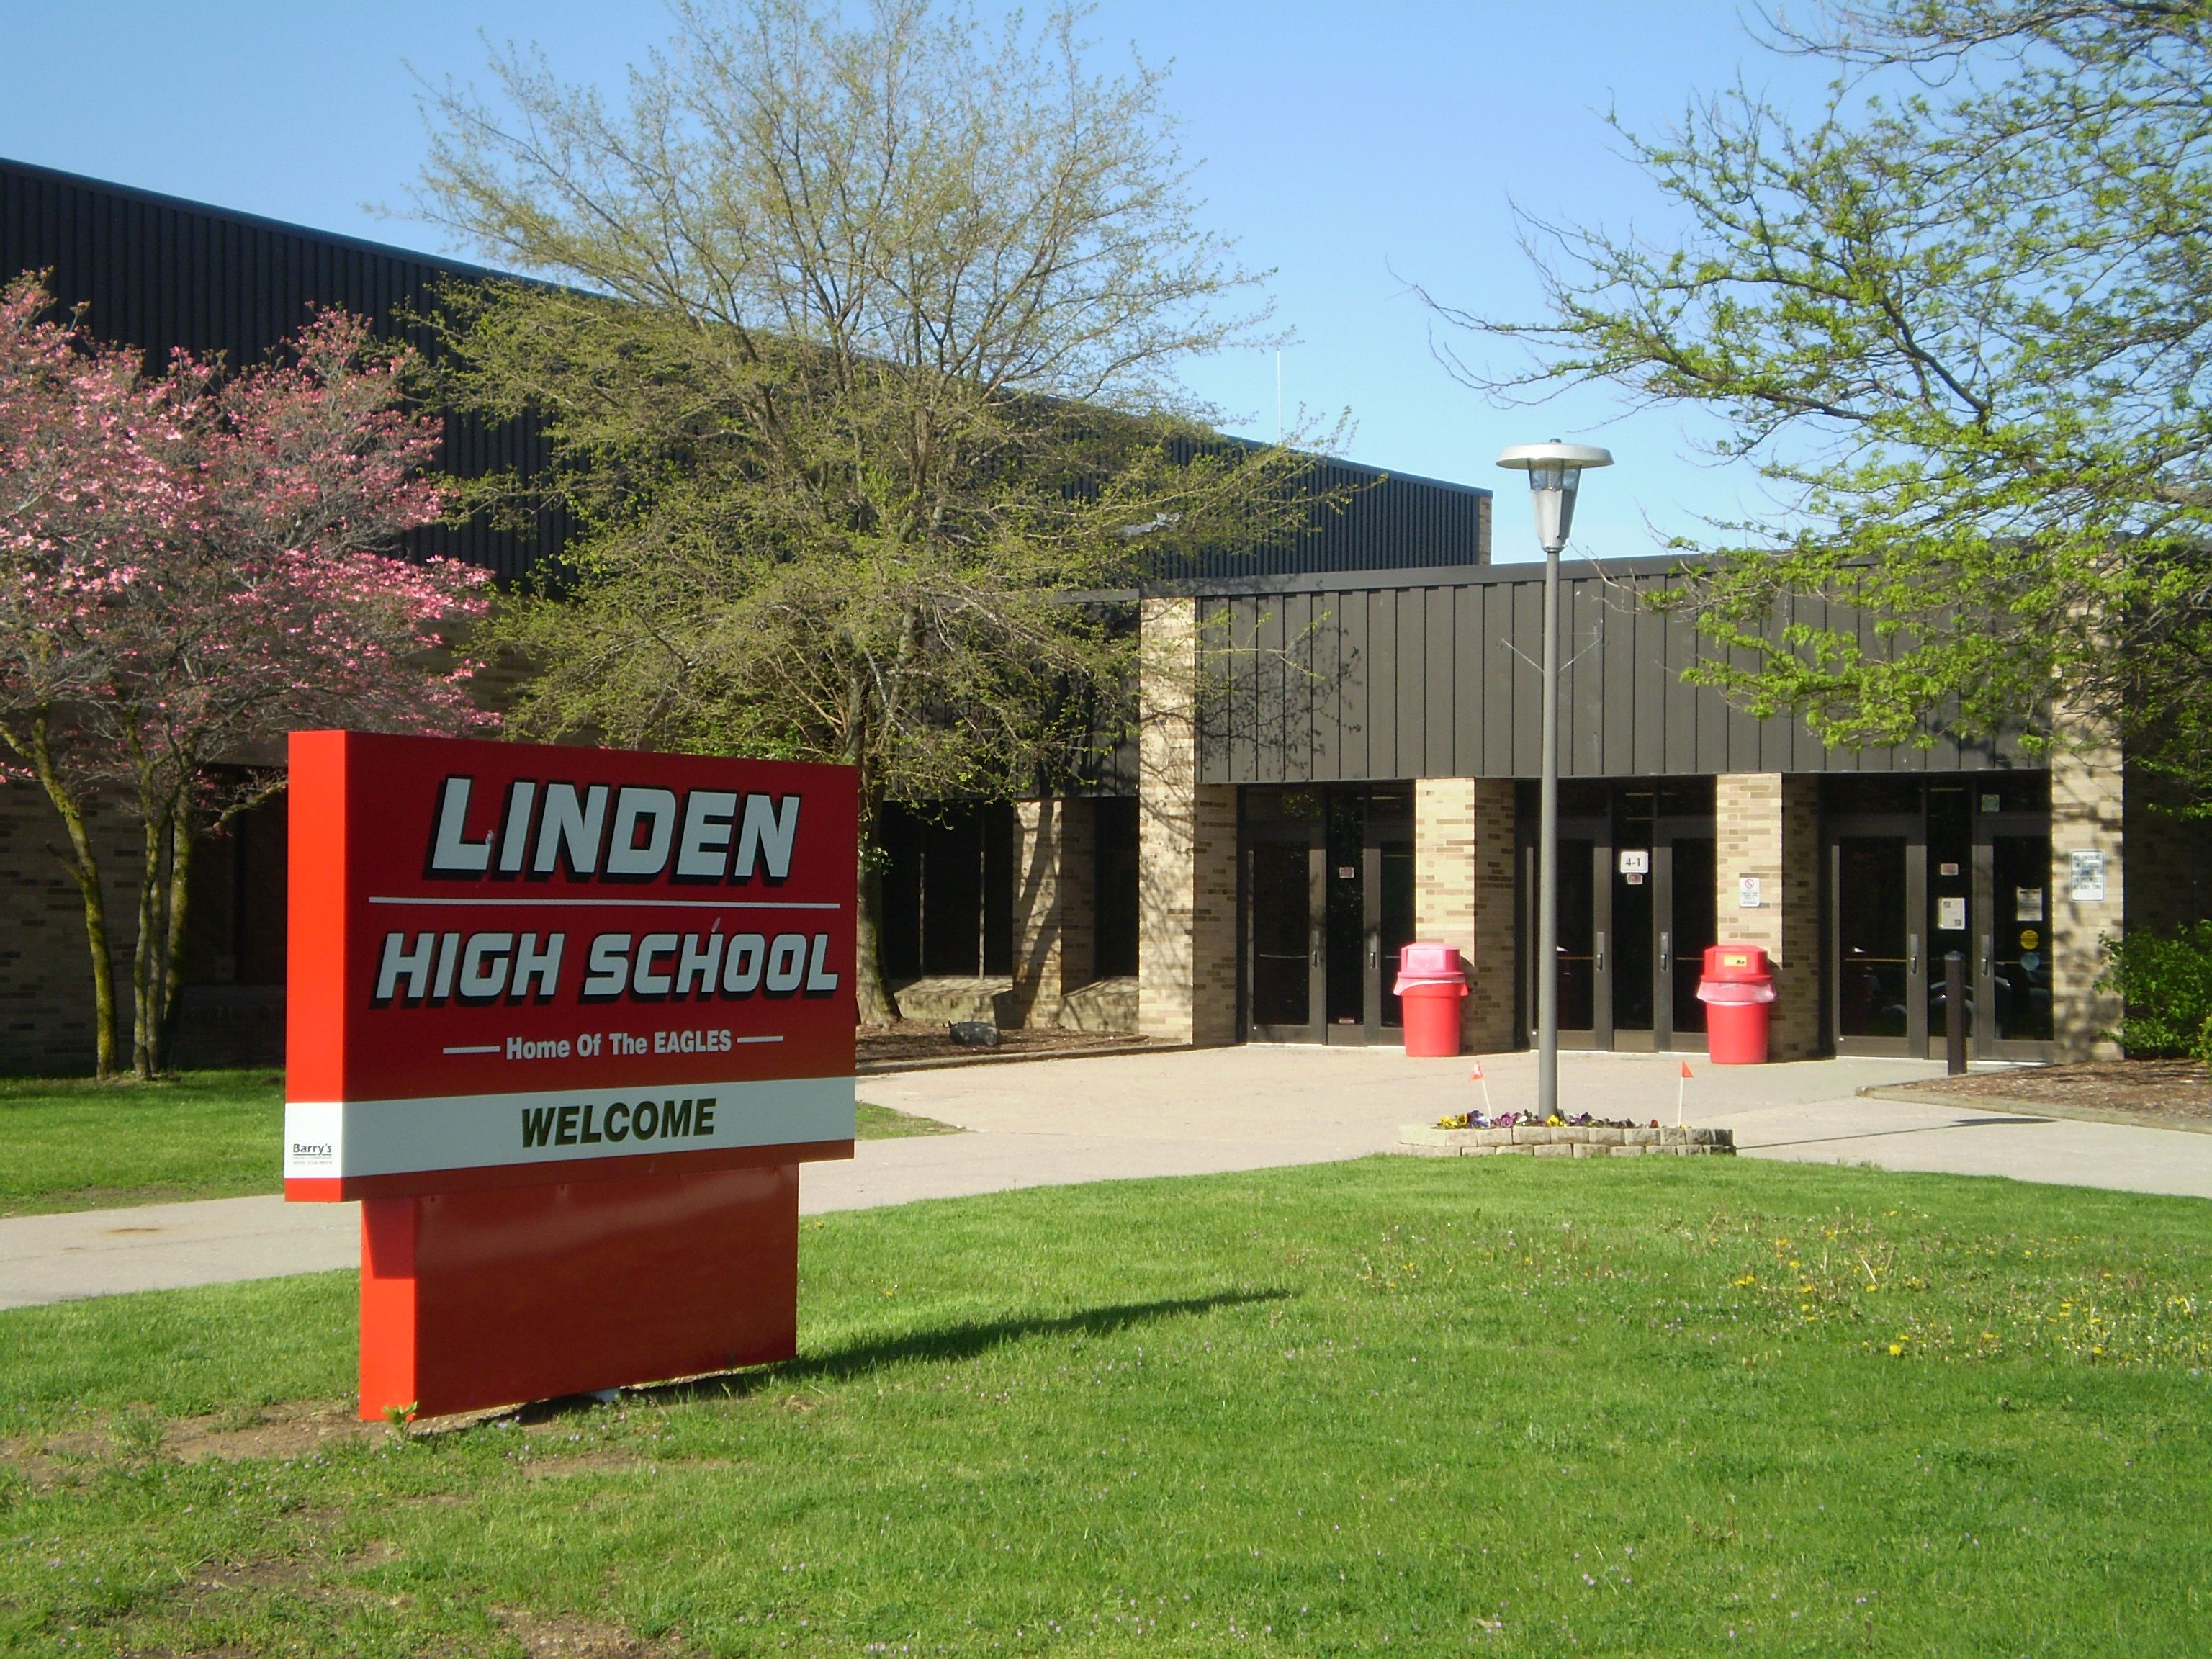 linden high school class of 1988 we didn t have that sign but linden high school class of 1988 we didn t have that sign but